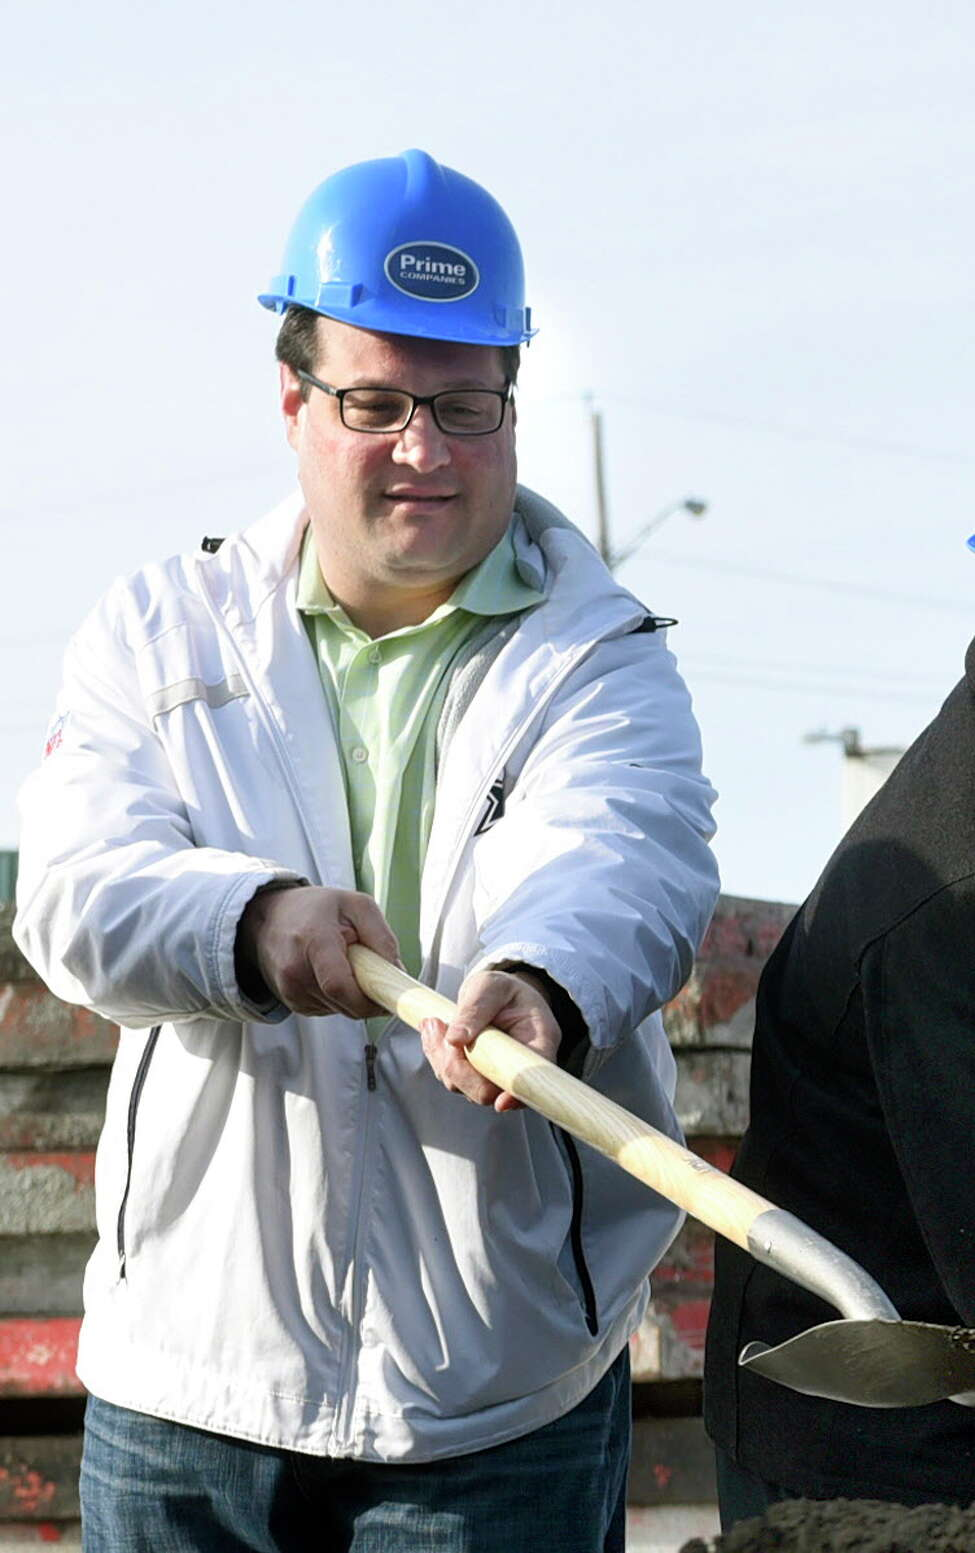 Ralph Signoracci, chairman of Cohoes Industrial Development Agency, joins partners and subsidiaries of Prime Companies to break ground for the Hudson Square luxury apartment complex on Tuesday, Dec. 13, 2016, in Cohoes, N.Y. Federal agents visited the Kosciusko Avenue residence of the city?s director of operations, Ralph V. Signoracci, who was served with a federal grand jury subpoena, according to a person familiar with the investigative activities. (Cindy Schultz/Times Union archive)